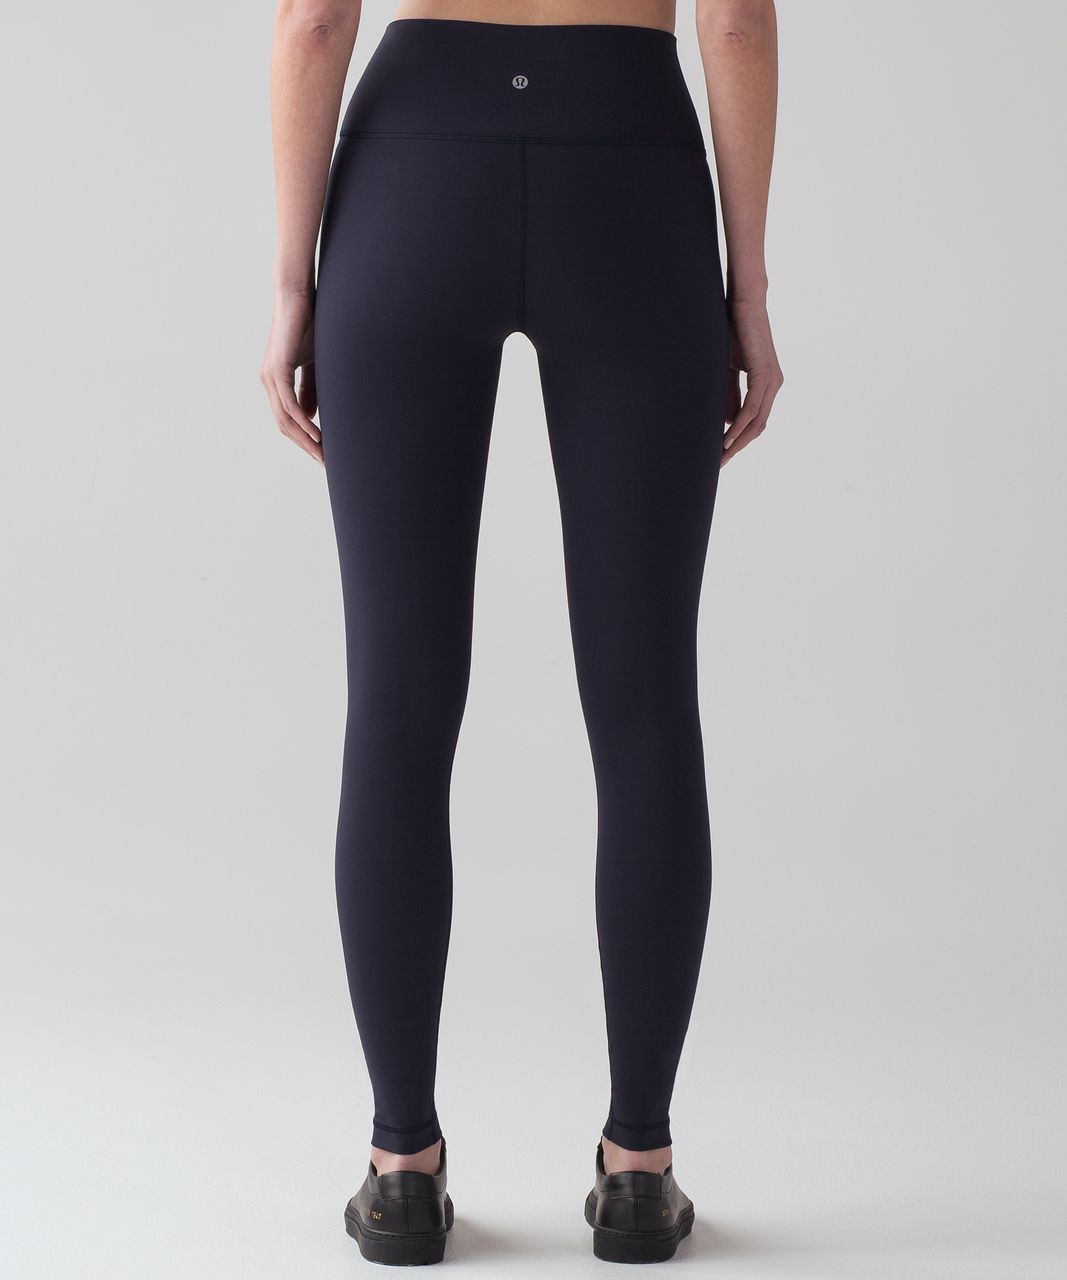 Lululemon Wunder Under Hi-Rise Tight (Full-On Luxtreme) - Midnight Navy